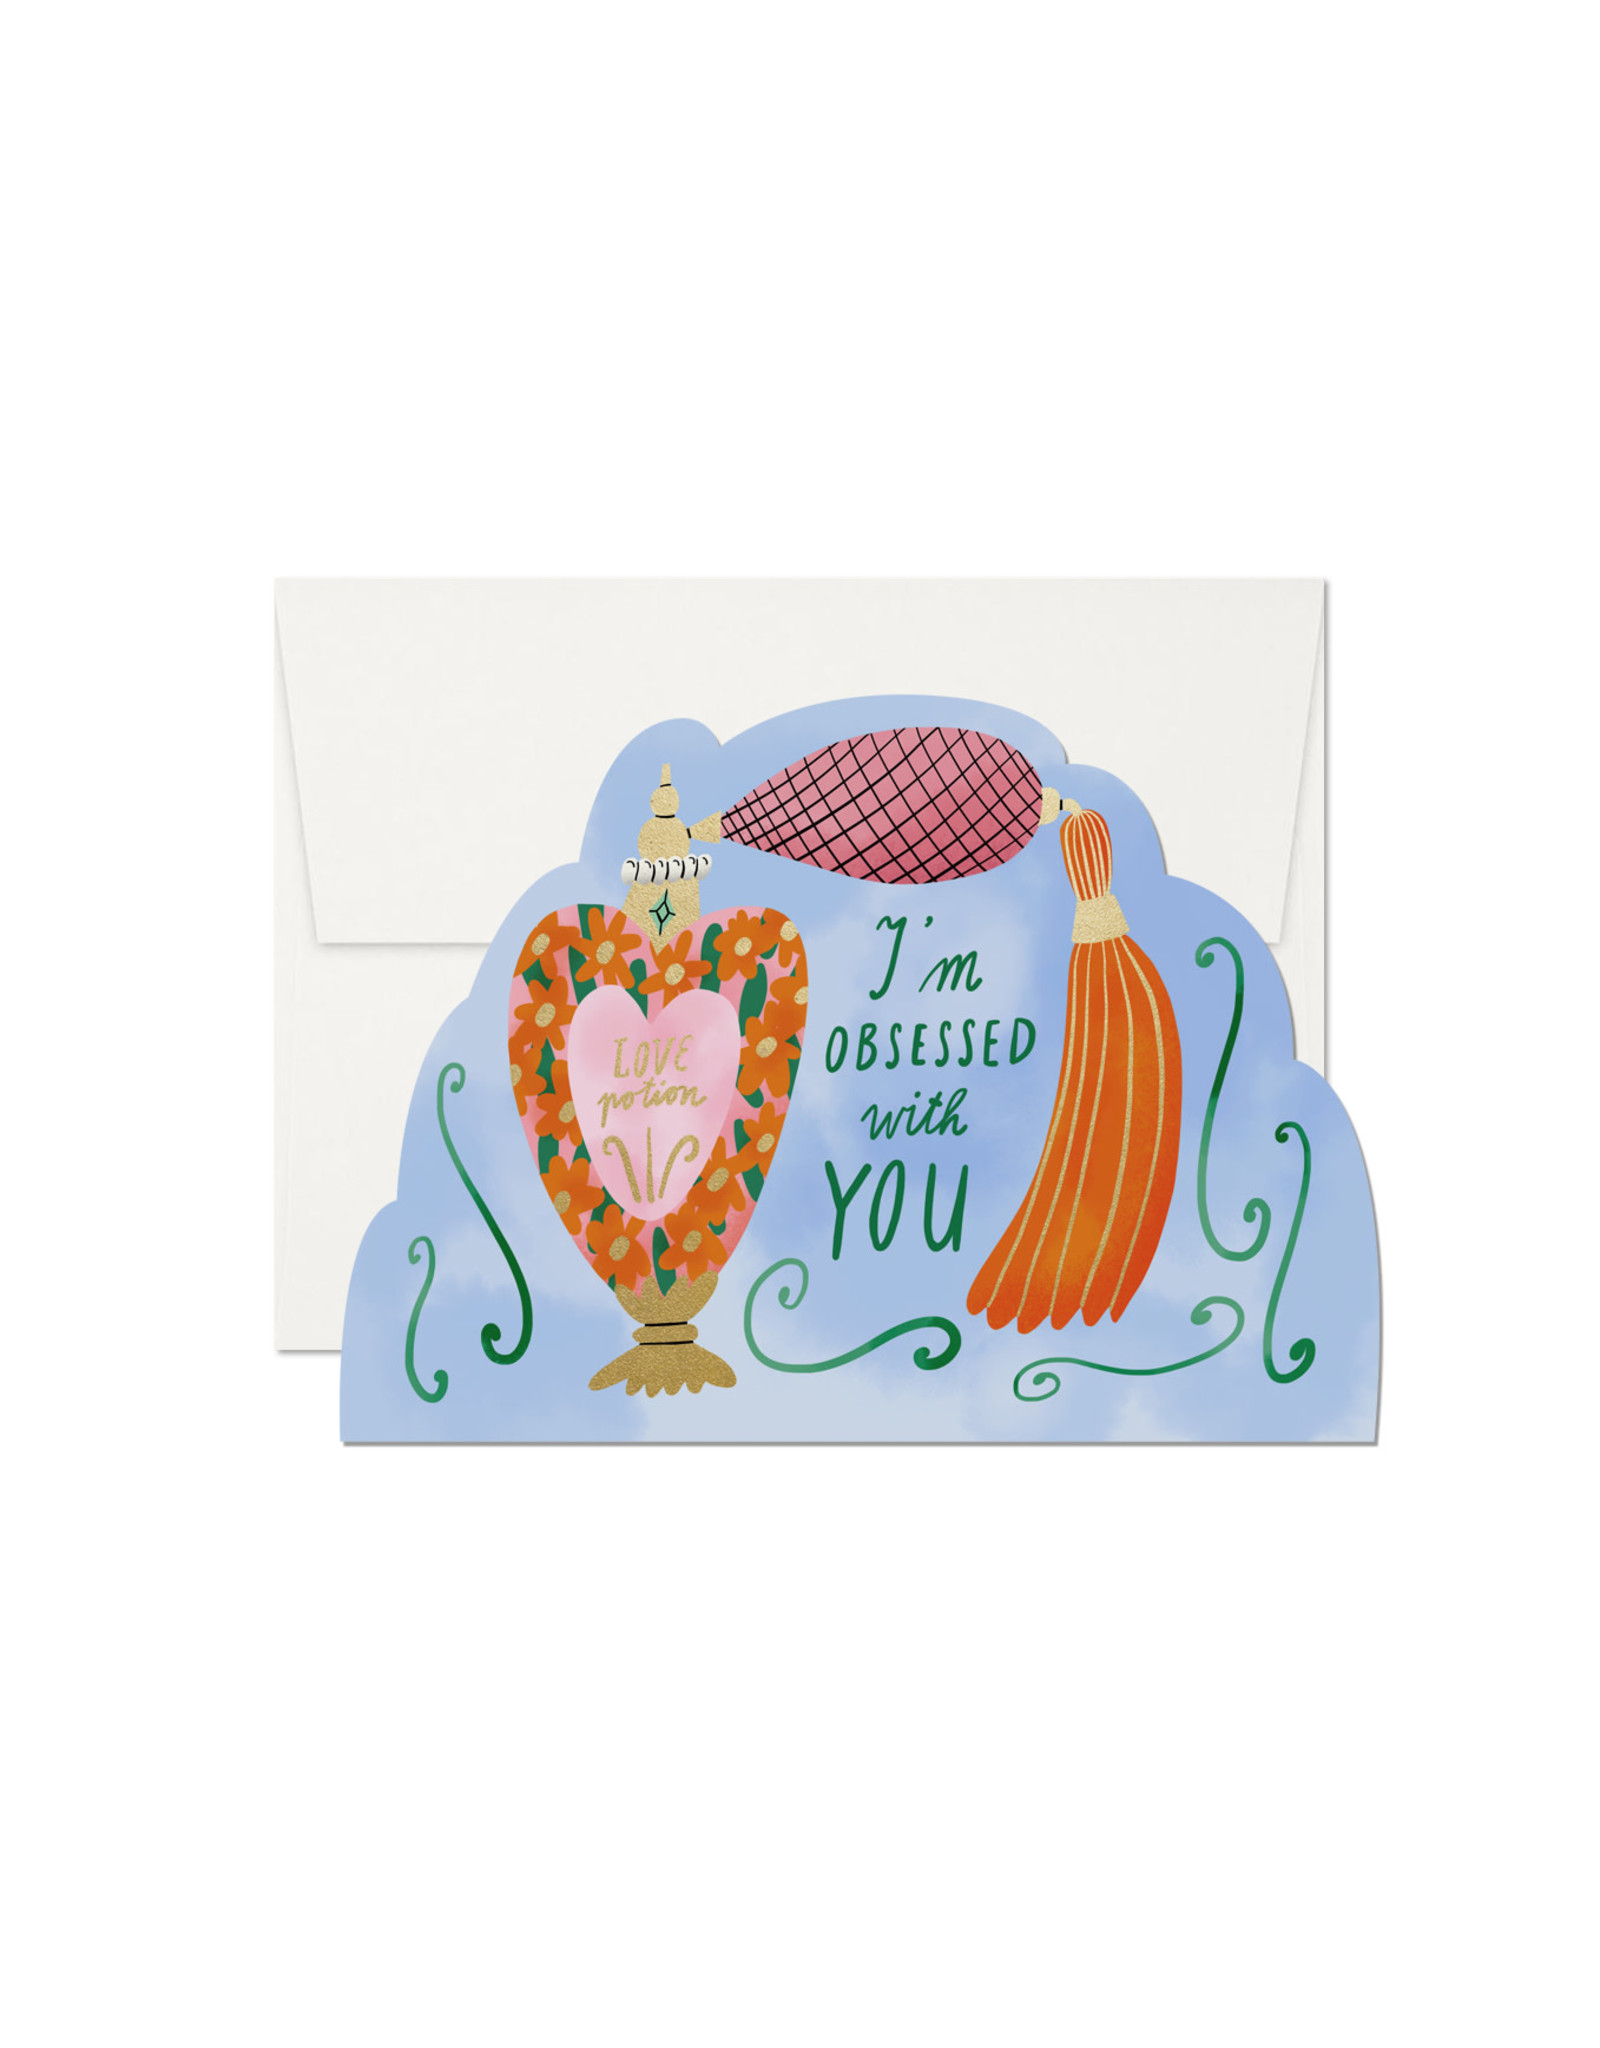 Red Cap Love Potion Obsessed with You Card